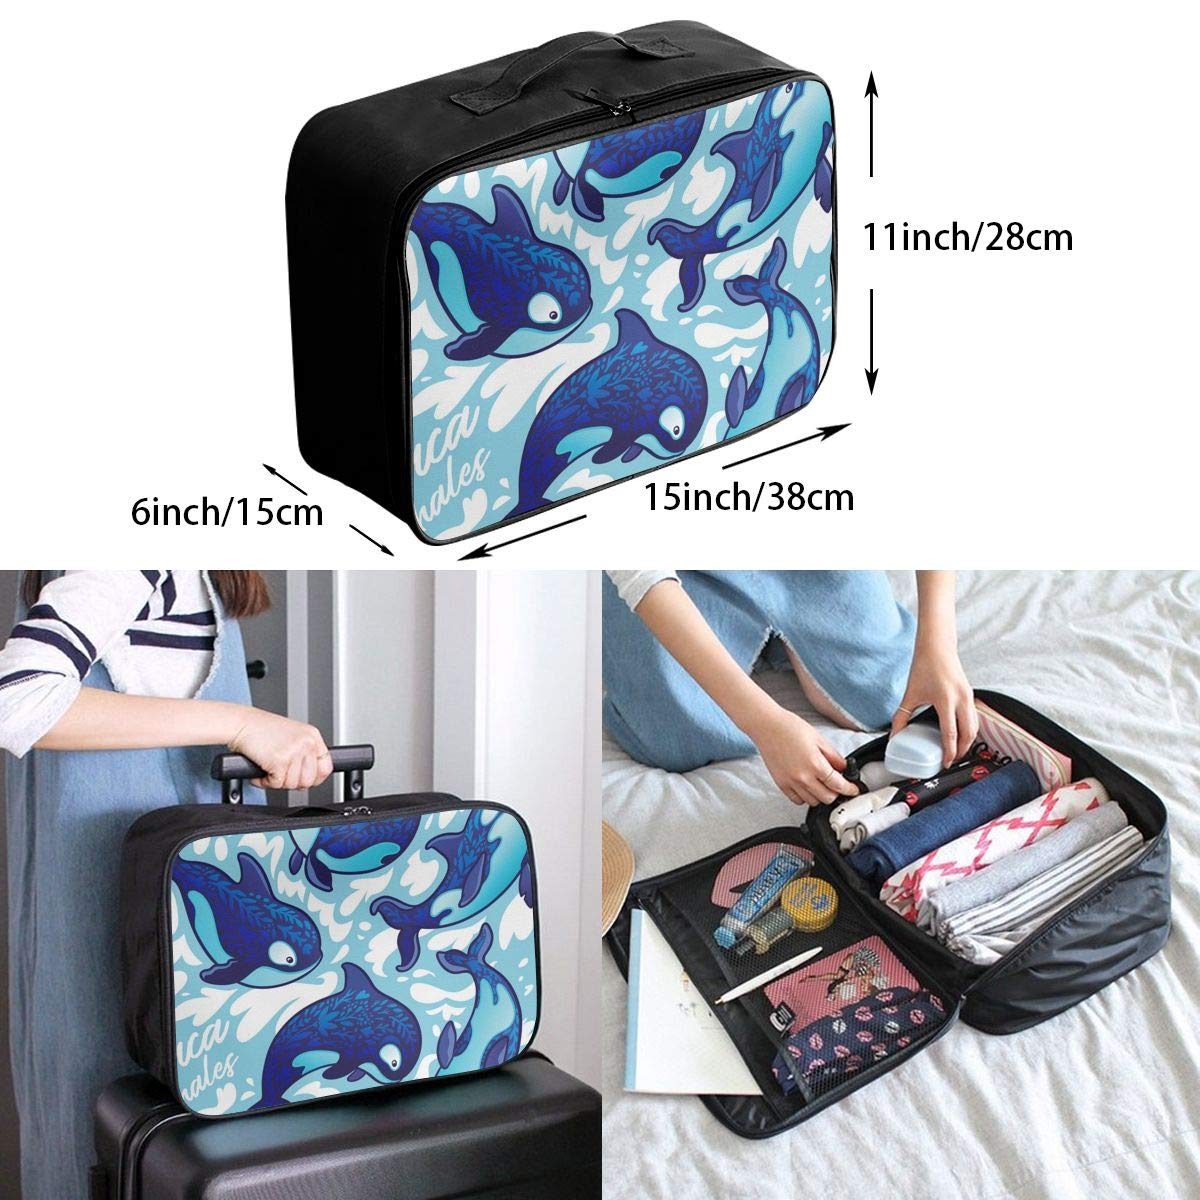 ADGAI Seamless Pattern with Decorative Orca Whales Canvas Travel Weekender Bag,Fashion Custom Lightweight Large Capacity Portable Luggage Bag,Suitcase Trolley Bag